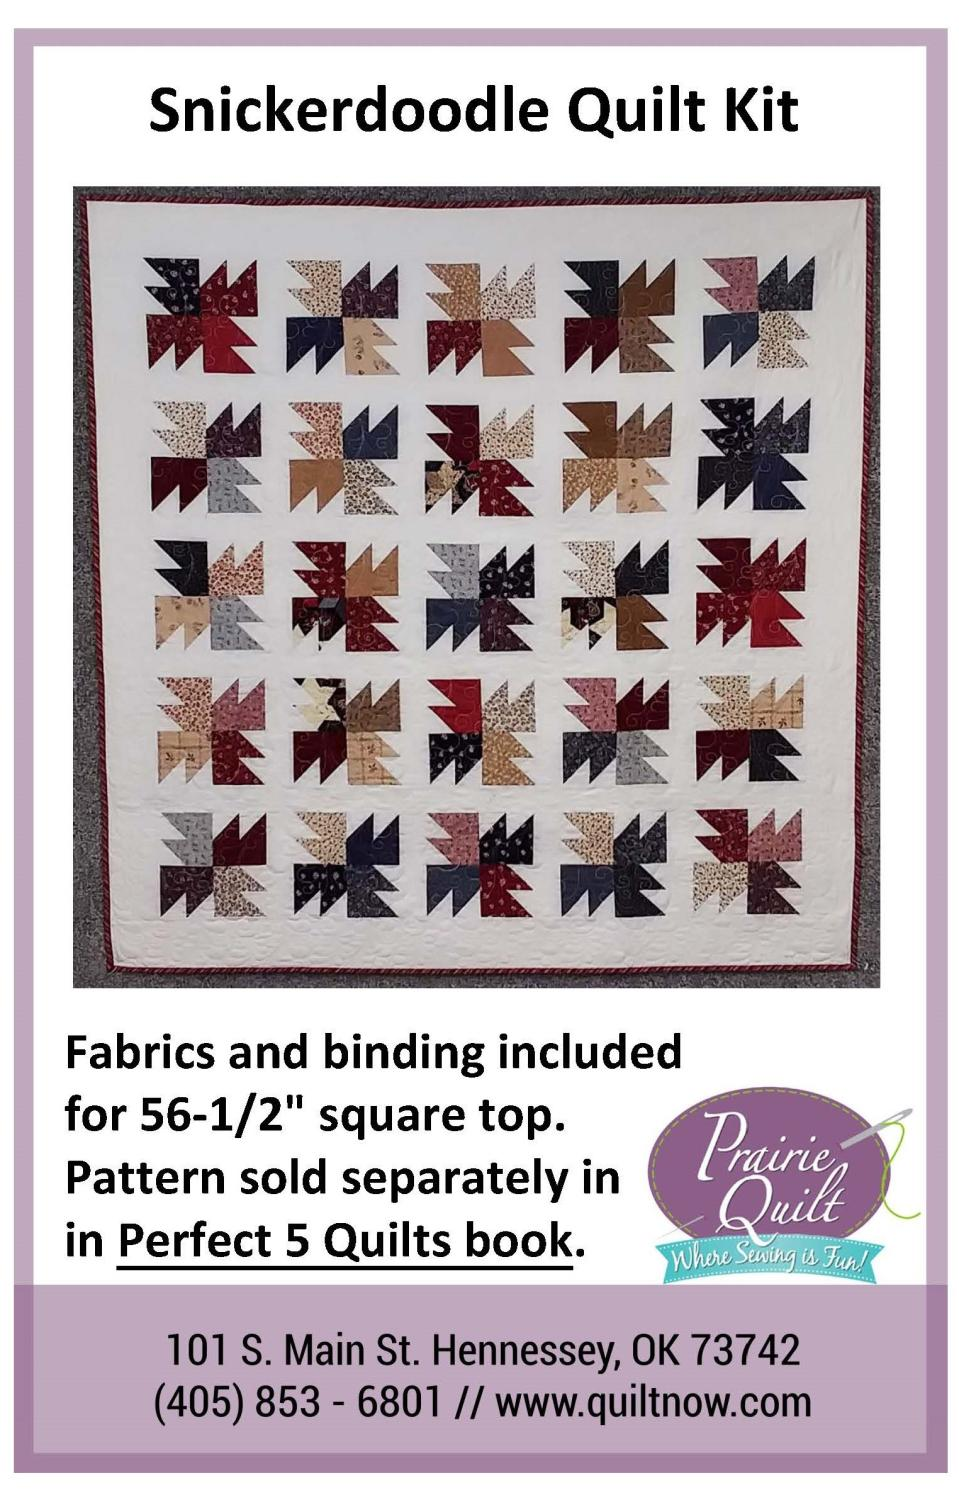 Snickerdoodle Quilt Kit